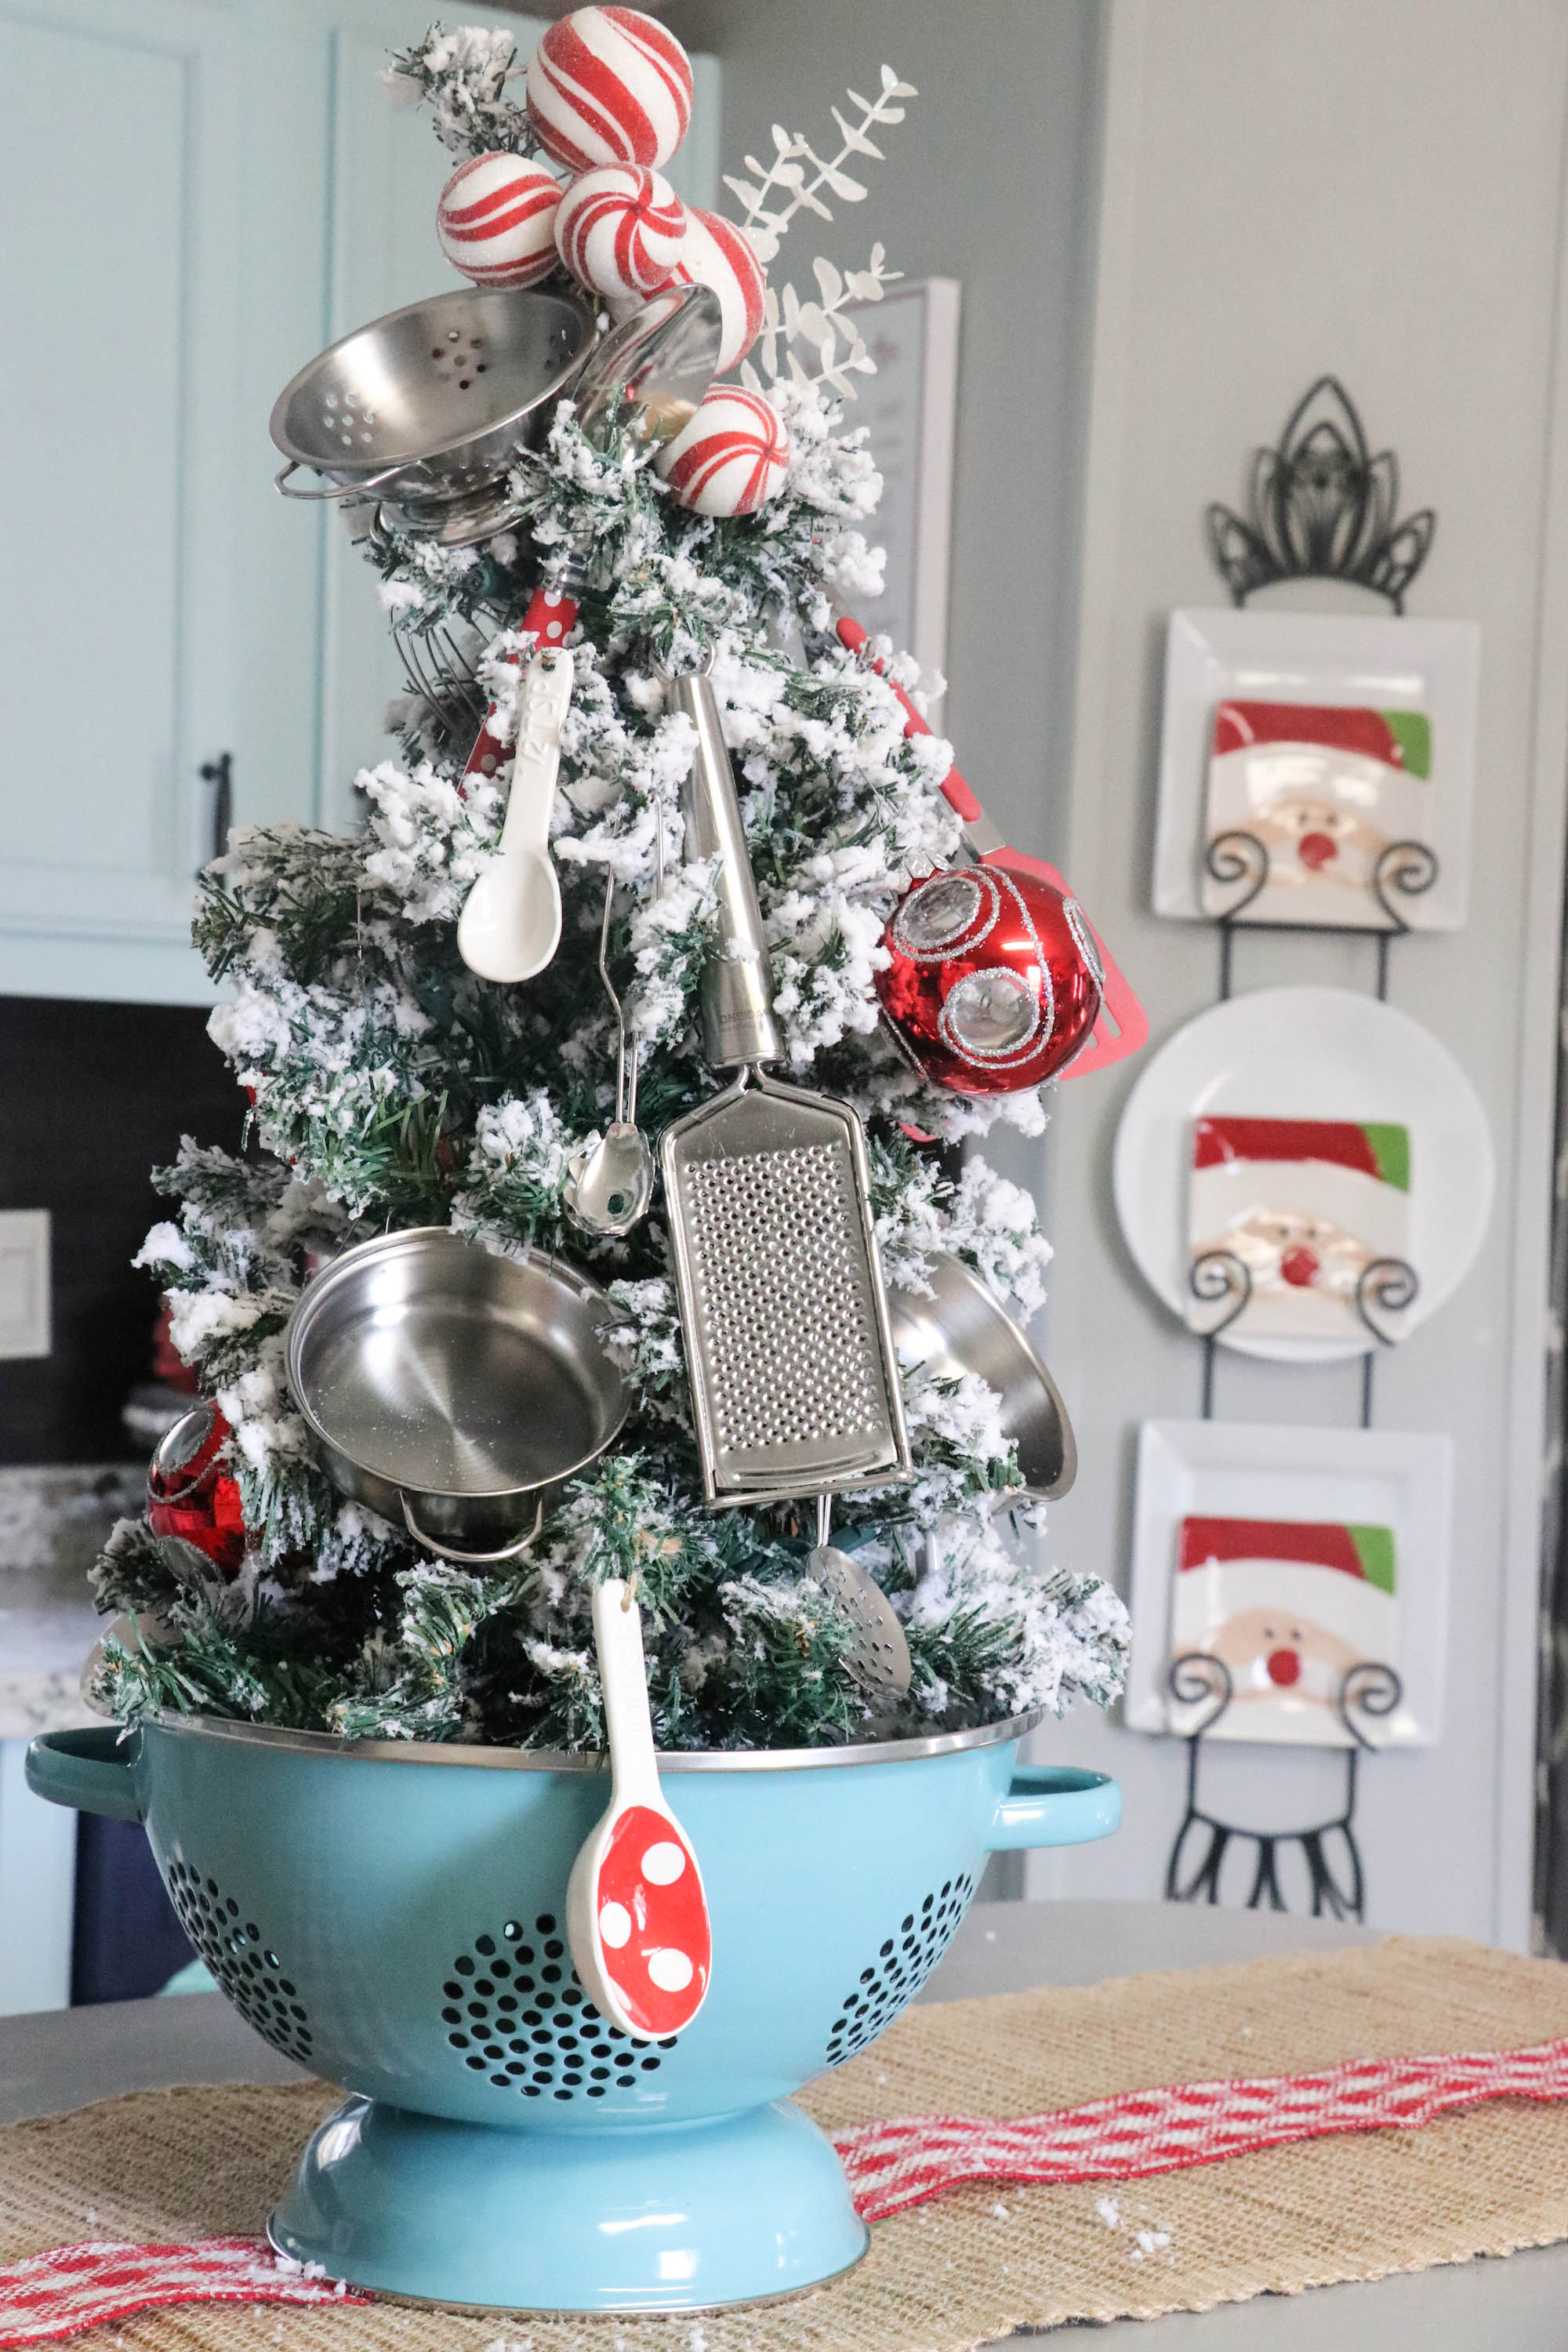 Kitchen Christmas Tree - Re-Fabbed